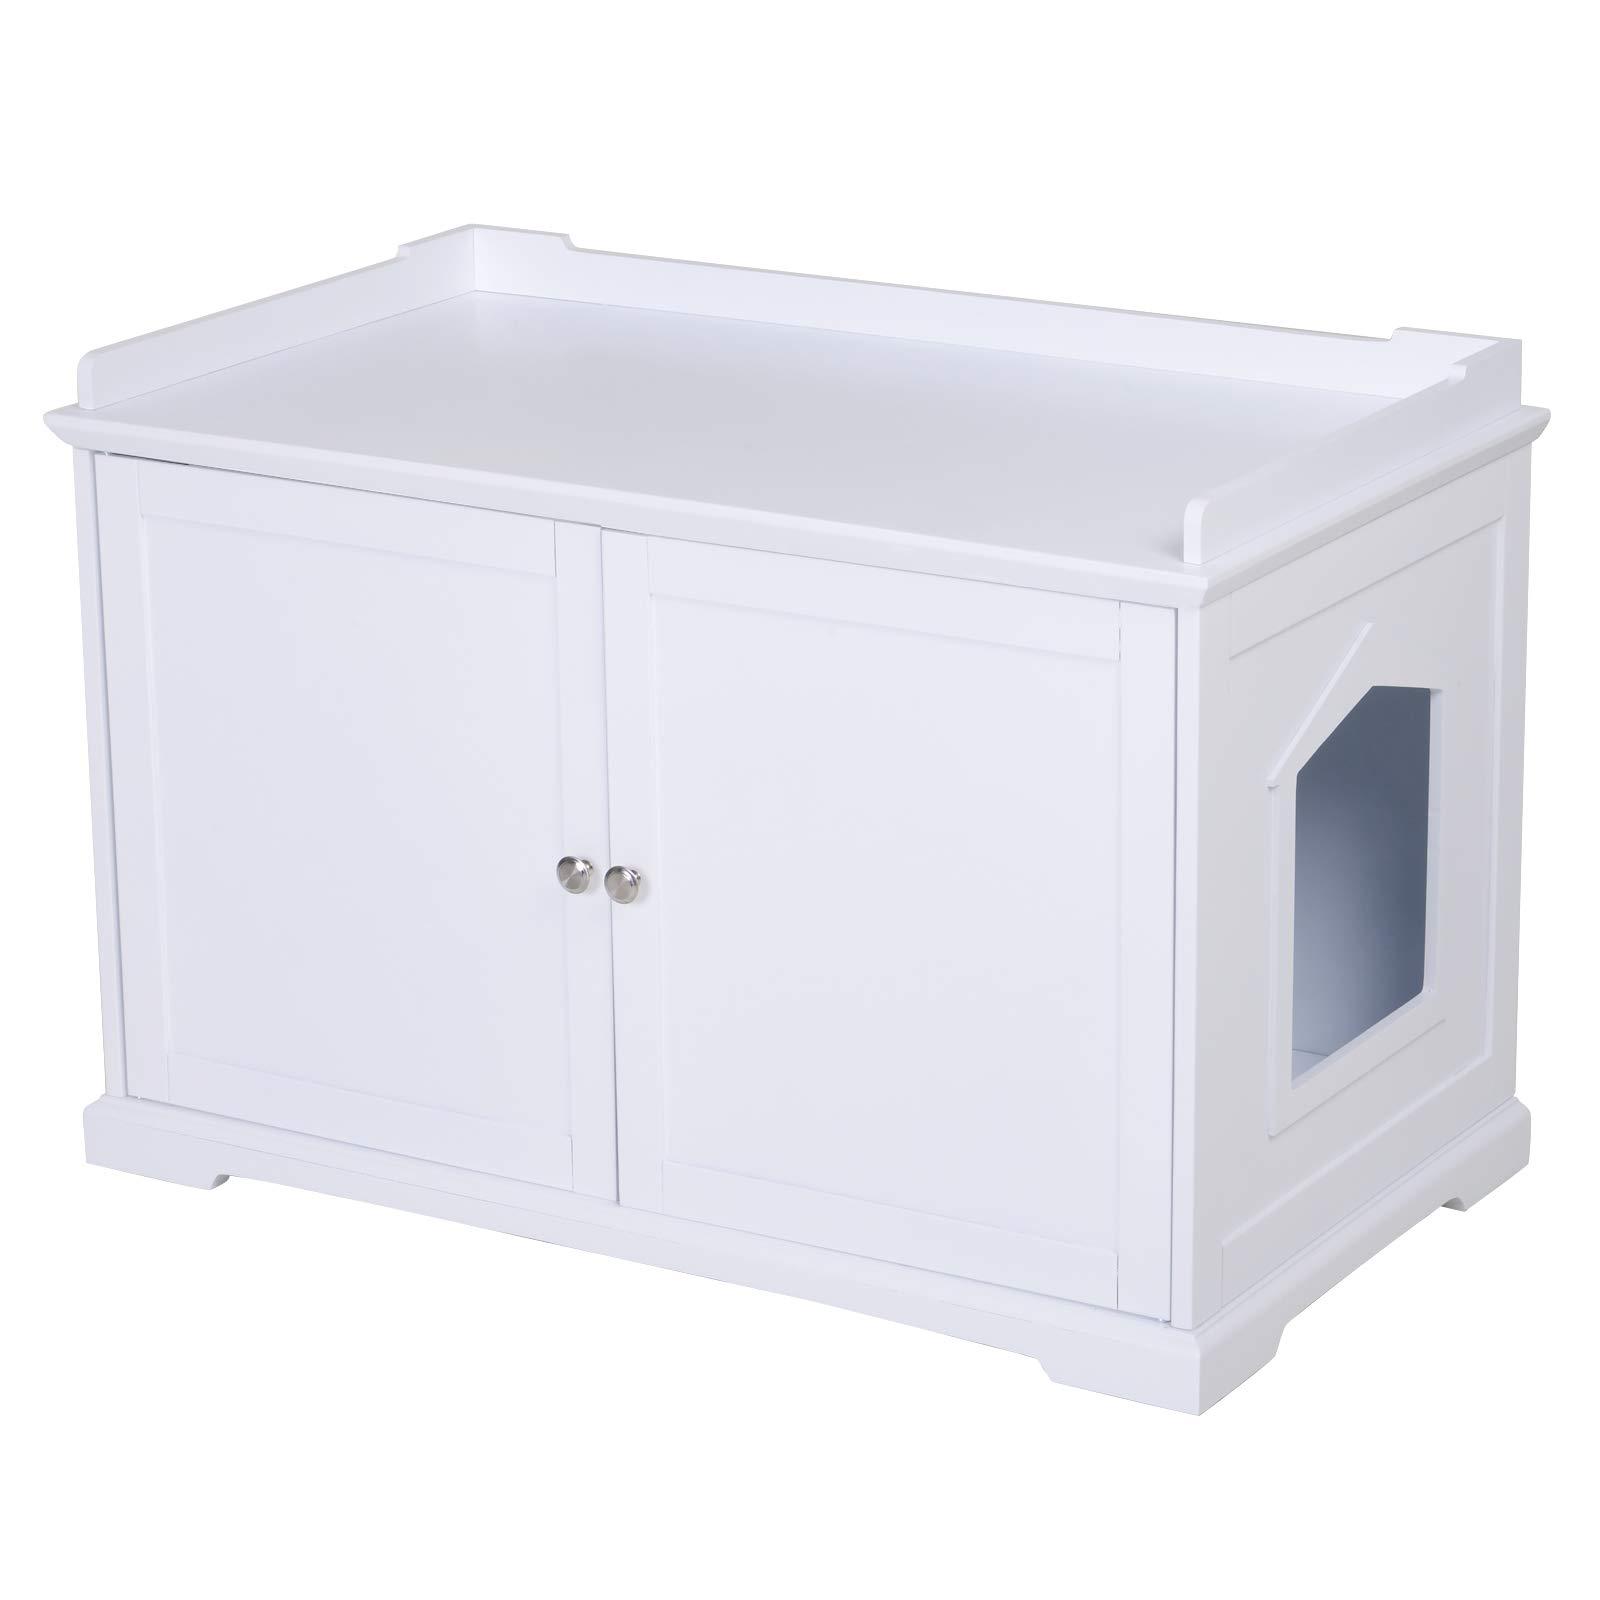 PawHut 23'' Wooden Covered Mess Free Cat Litter Box End Table Hideaway Cabinet with Storage - White by PawHut